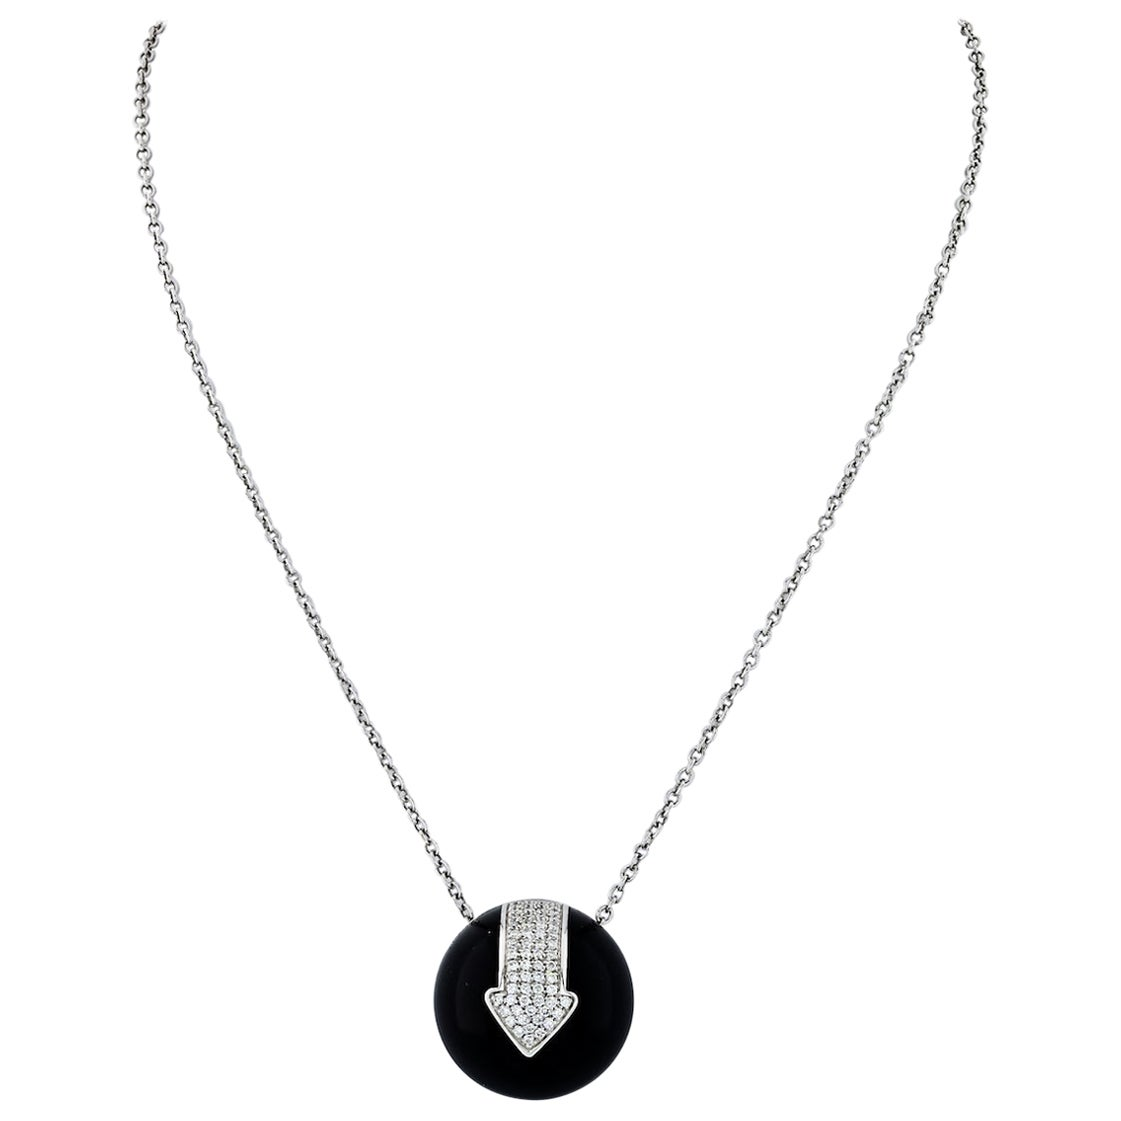 Bvlgari 18 Karat White Gold Diamond Arrow Jet Circle Pendant